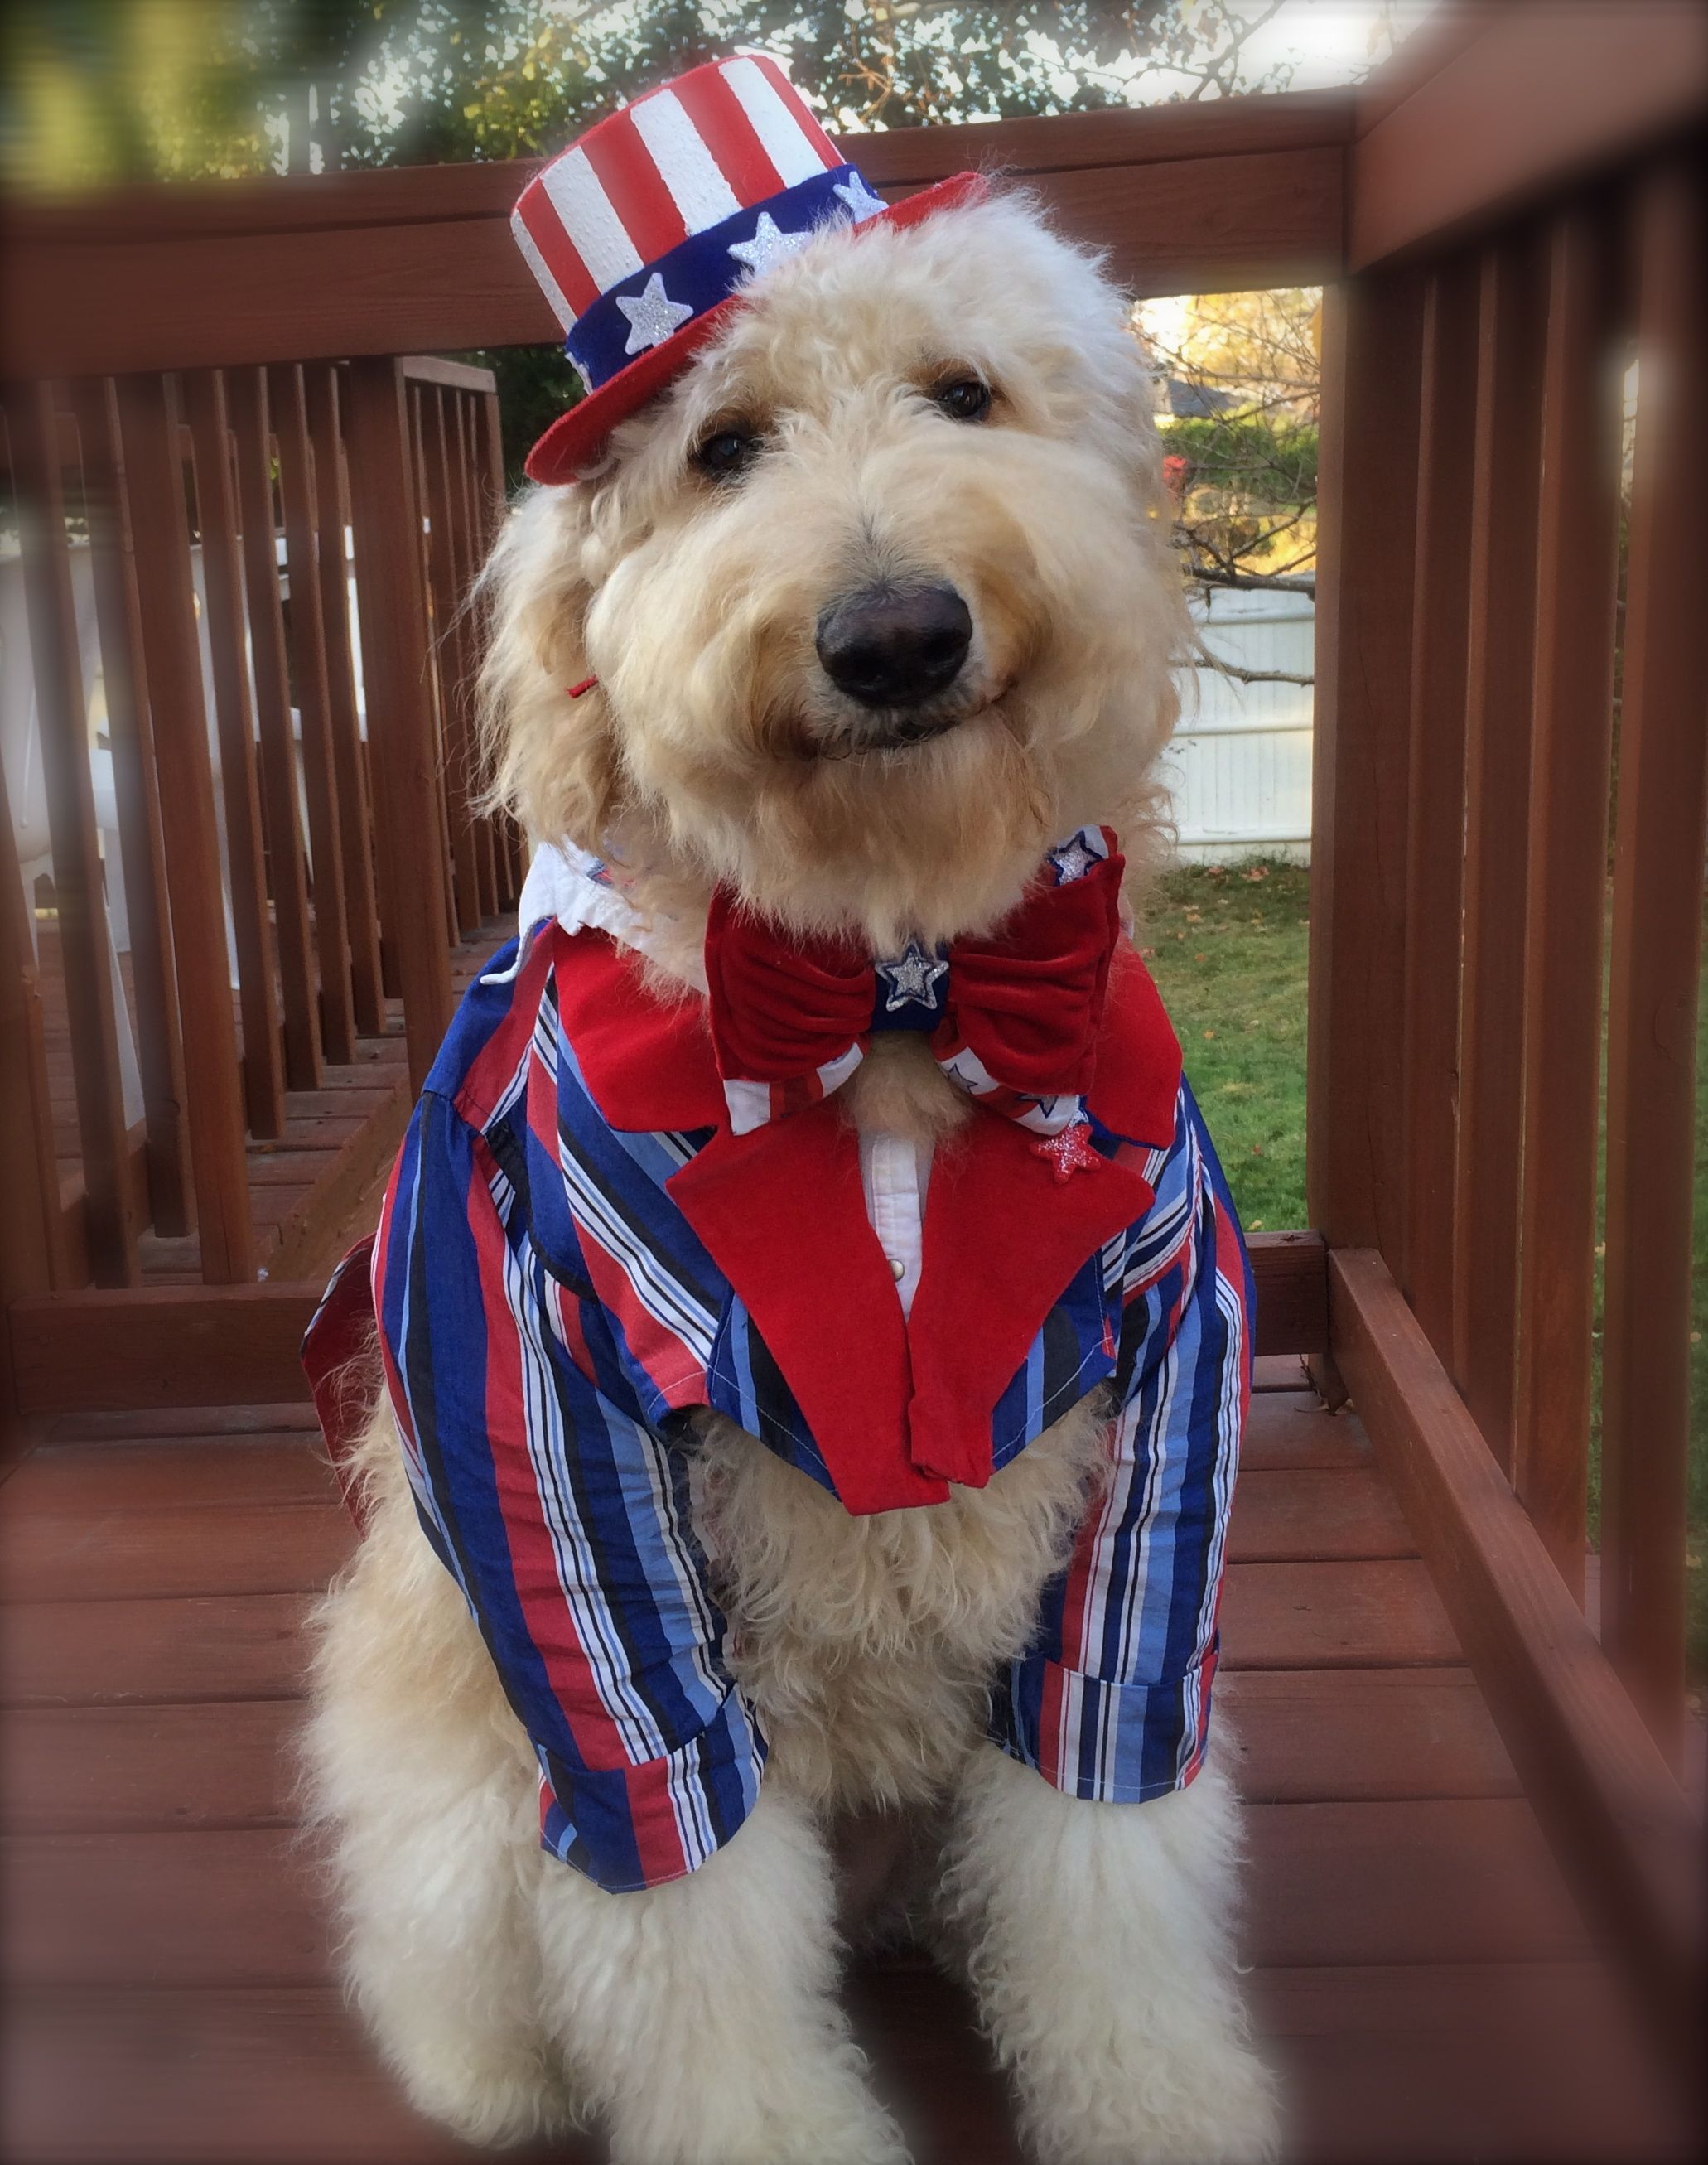 My Goldendoodle, Sam. All dressed up in his home made